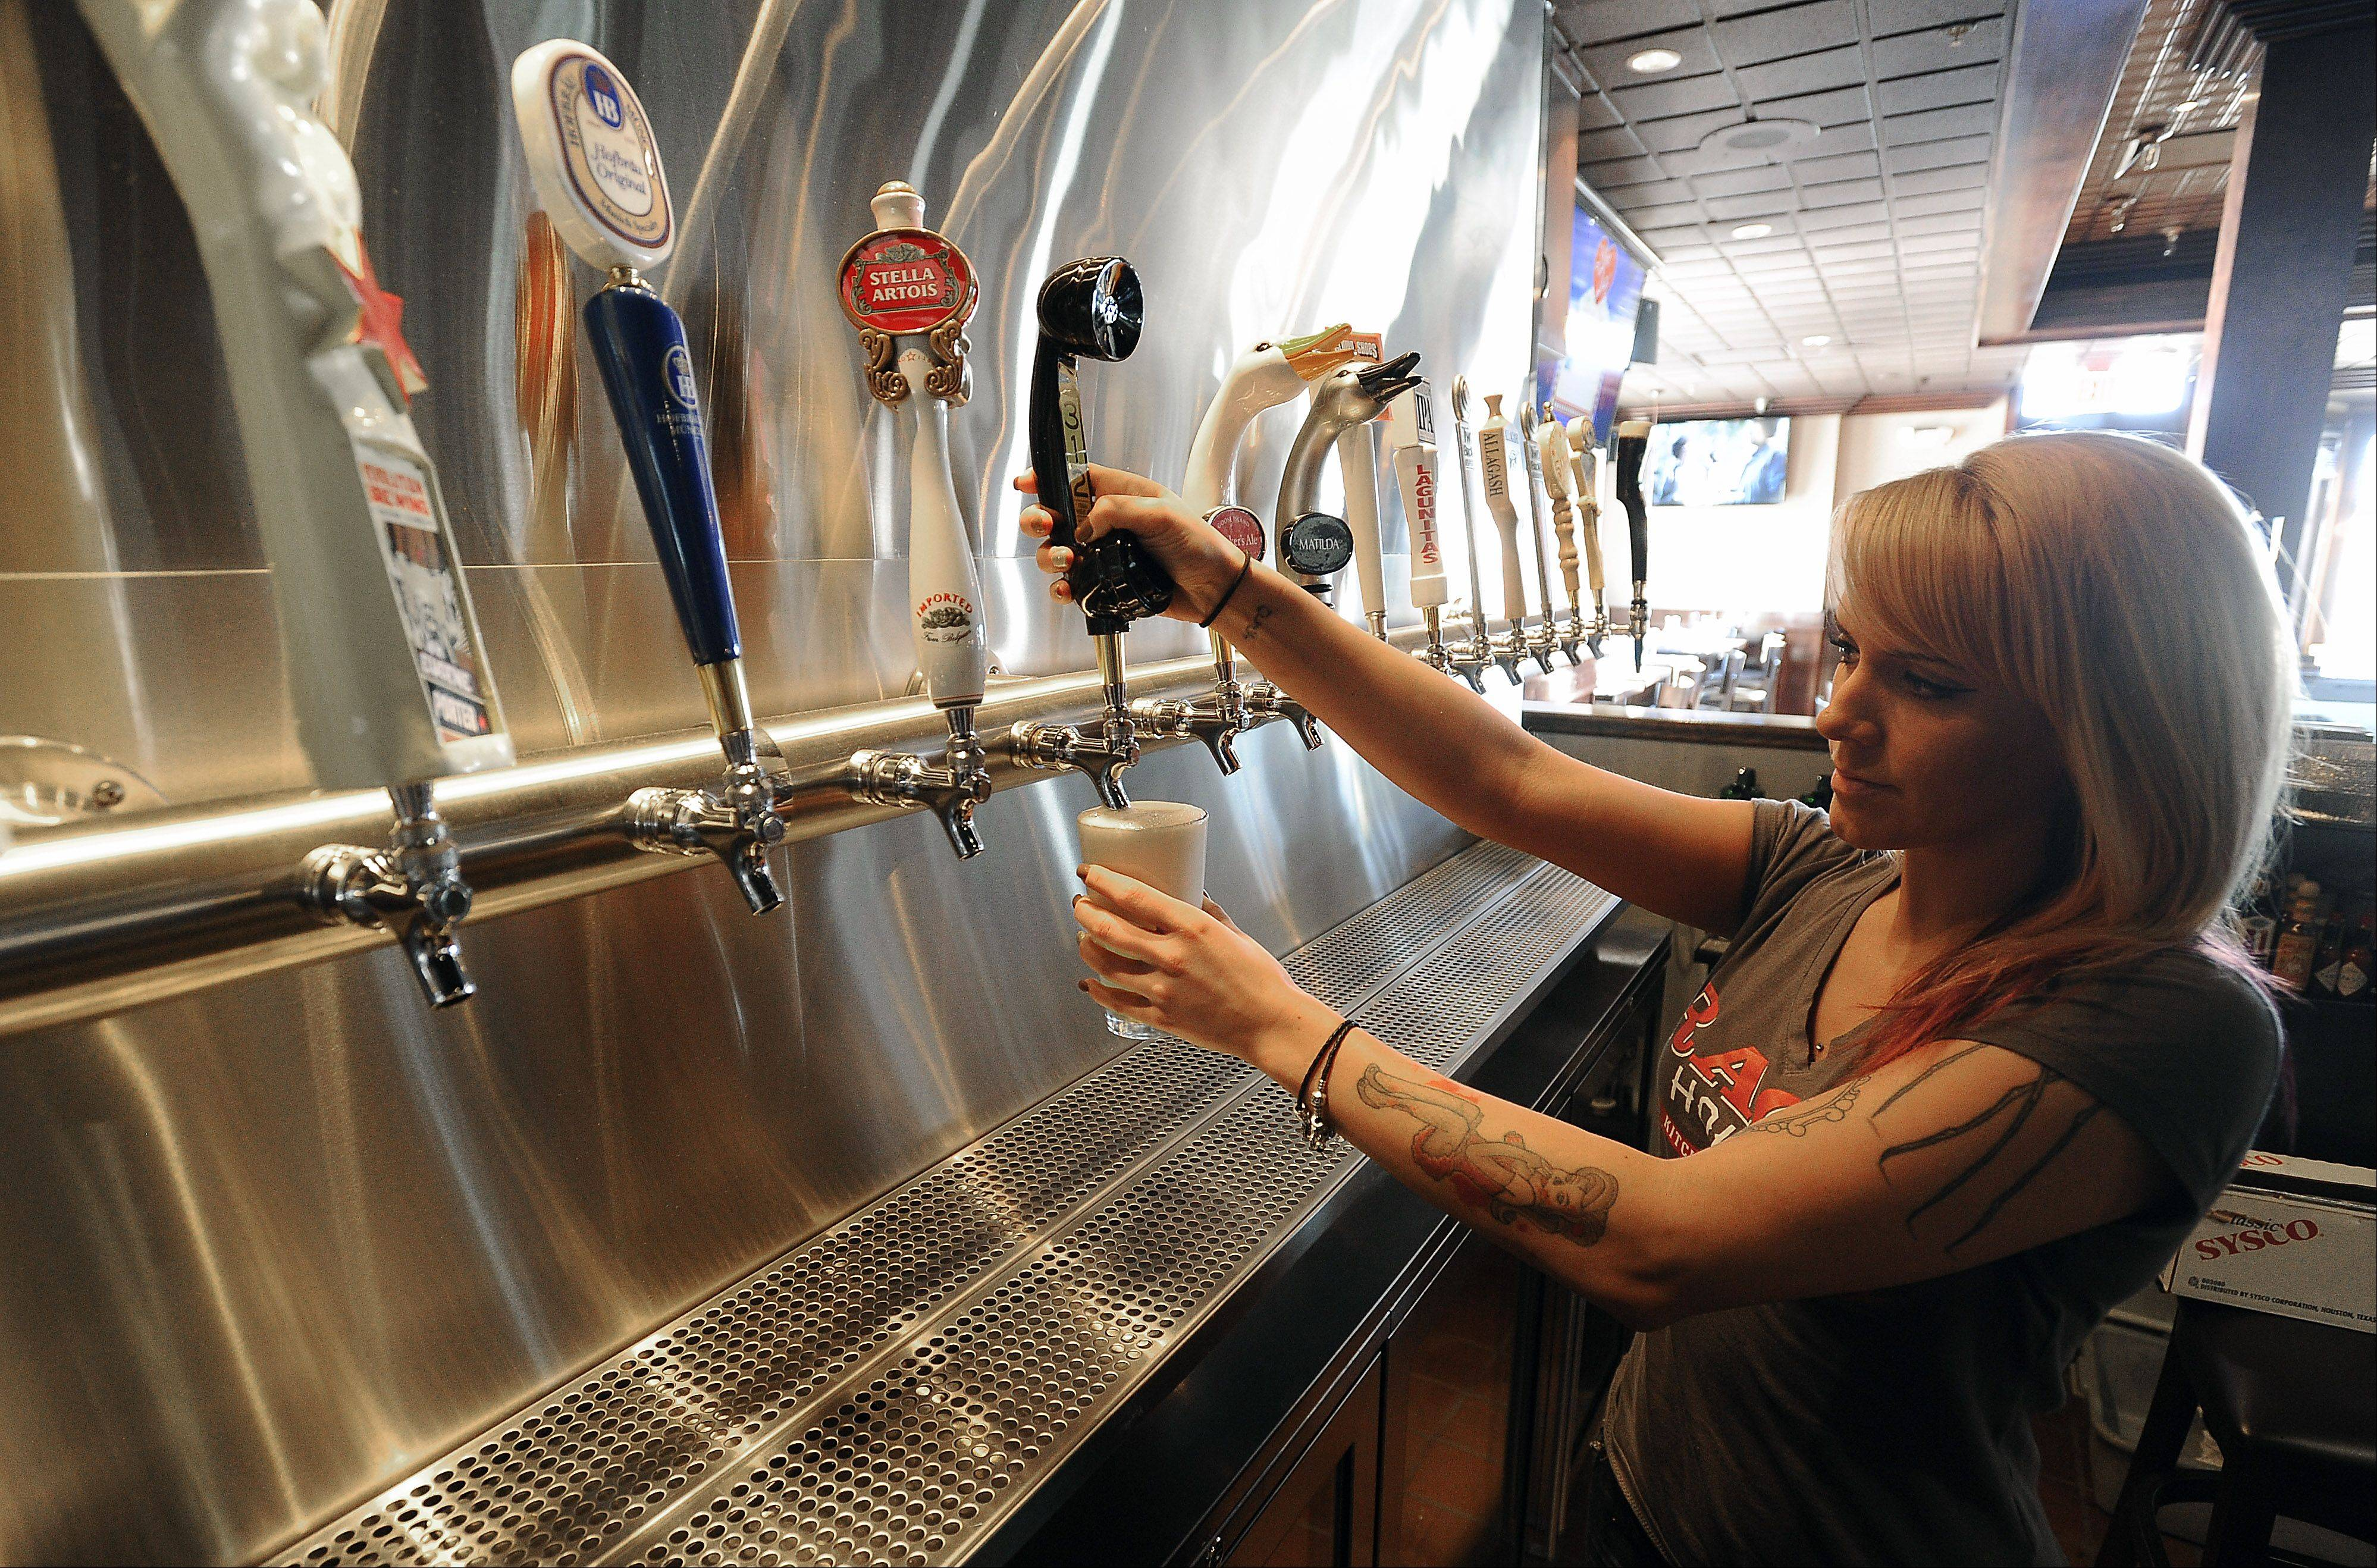 Bartender Suzy Jamina of Palatine serves up over 23 different ales.